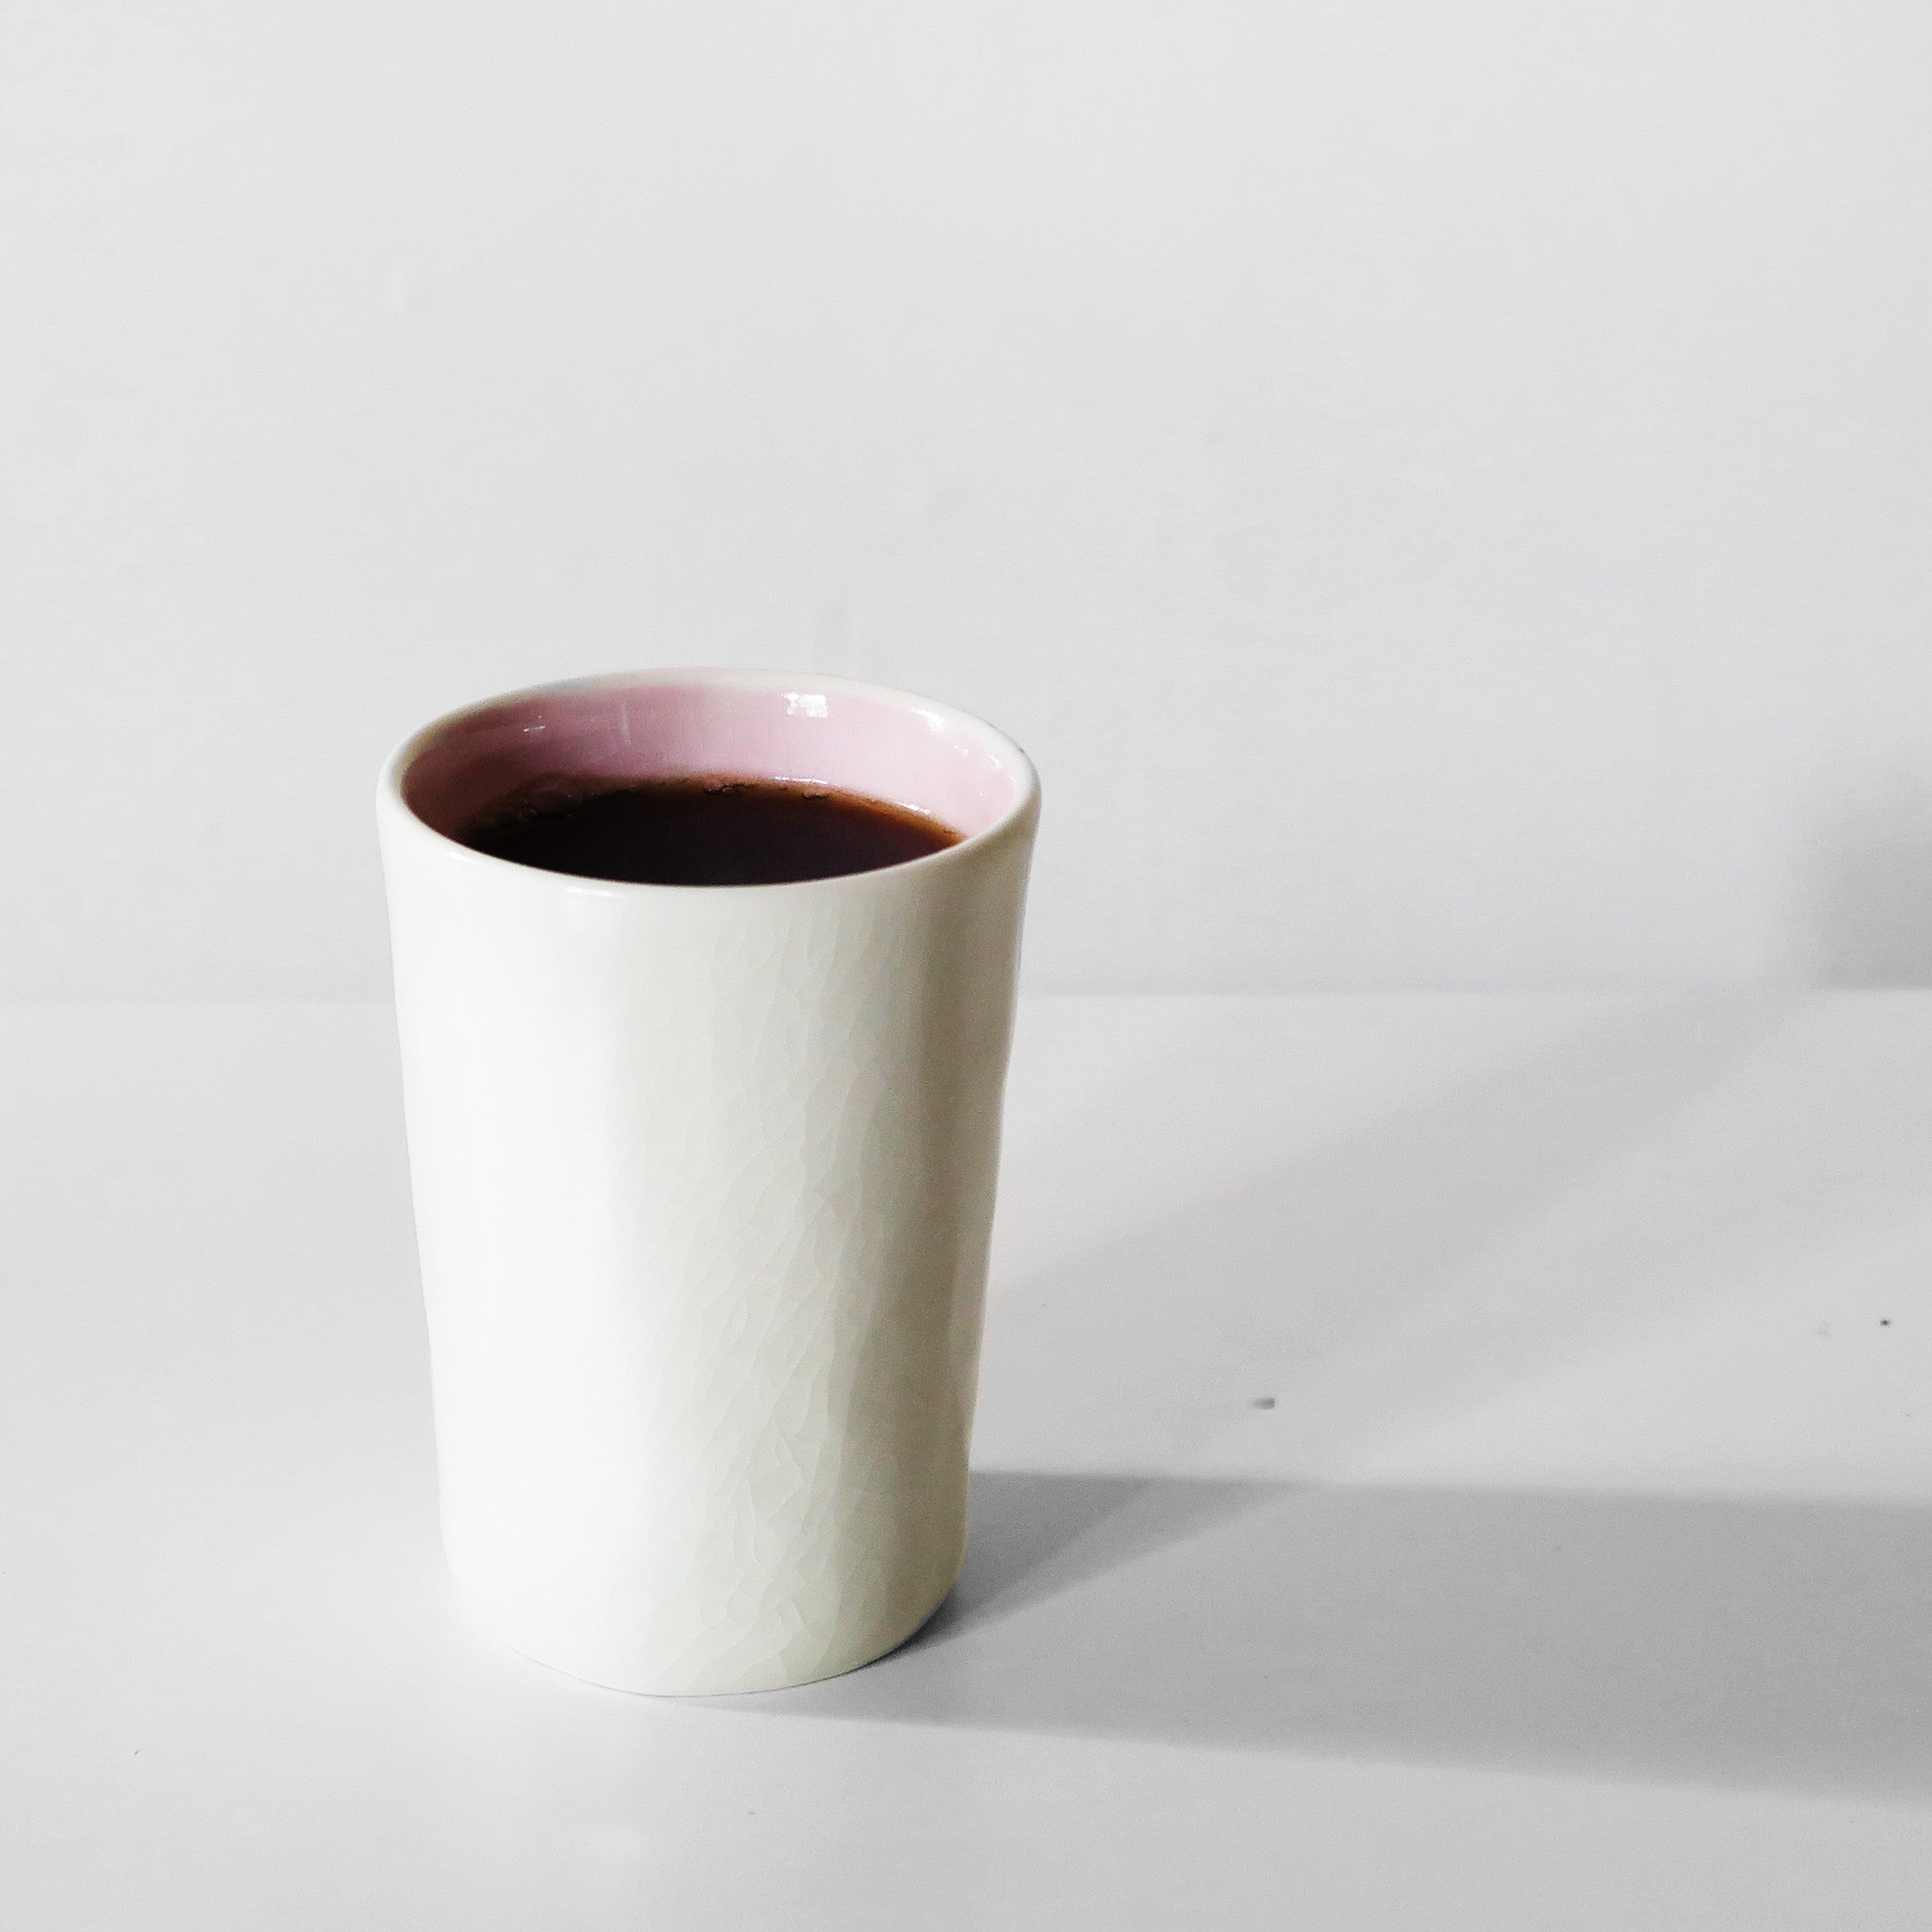 Handmade White & pink glazed ceramic mug By SkandiHus